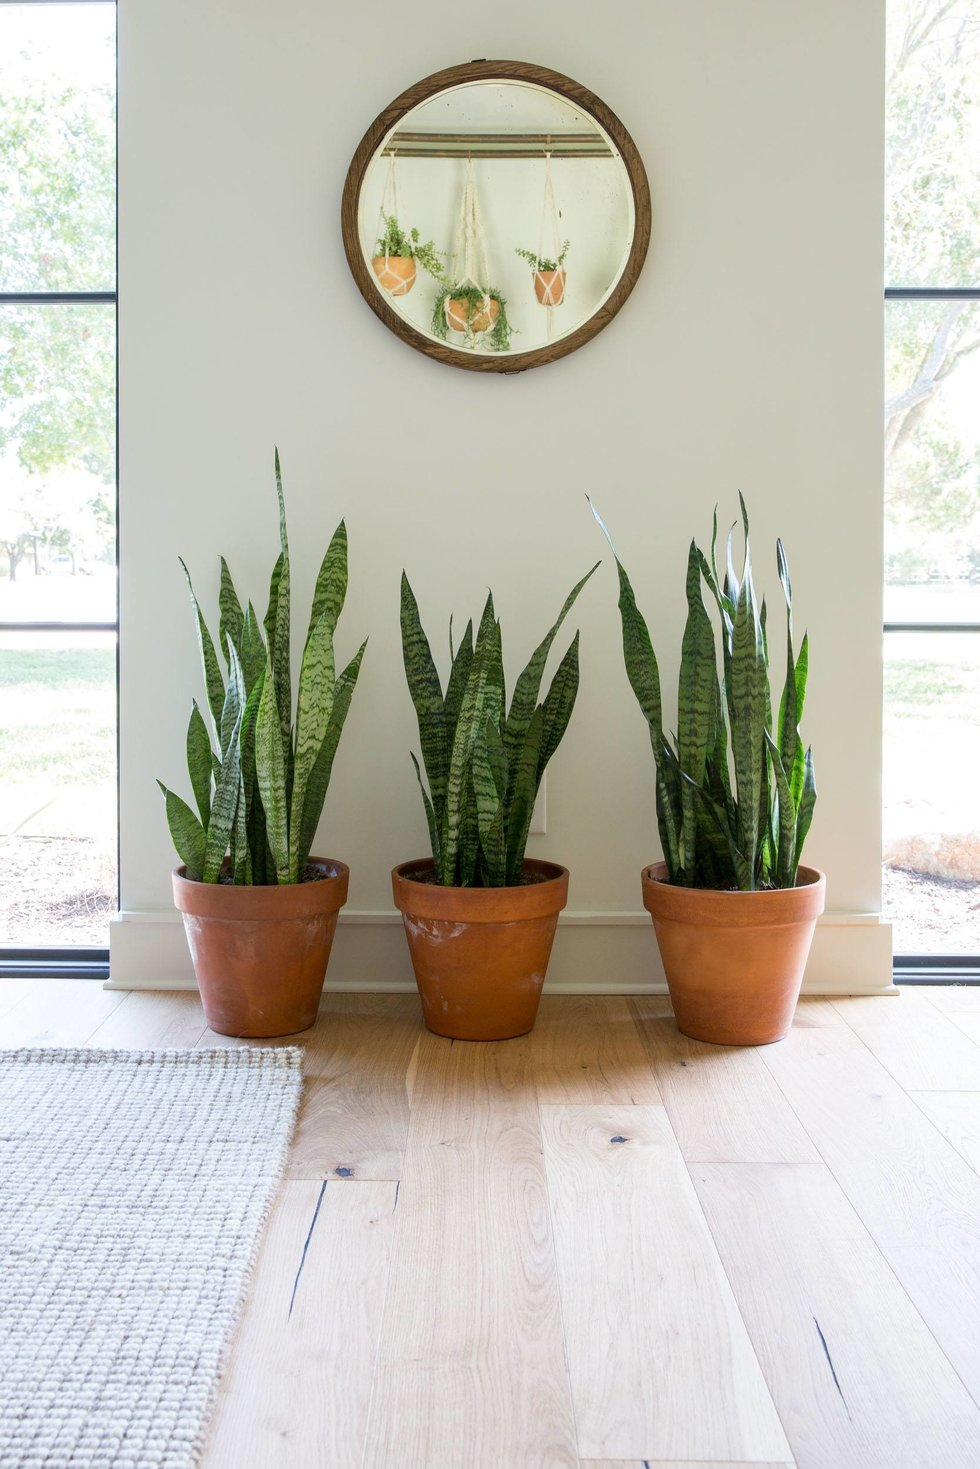 house plants with mirror